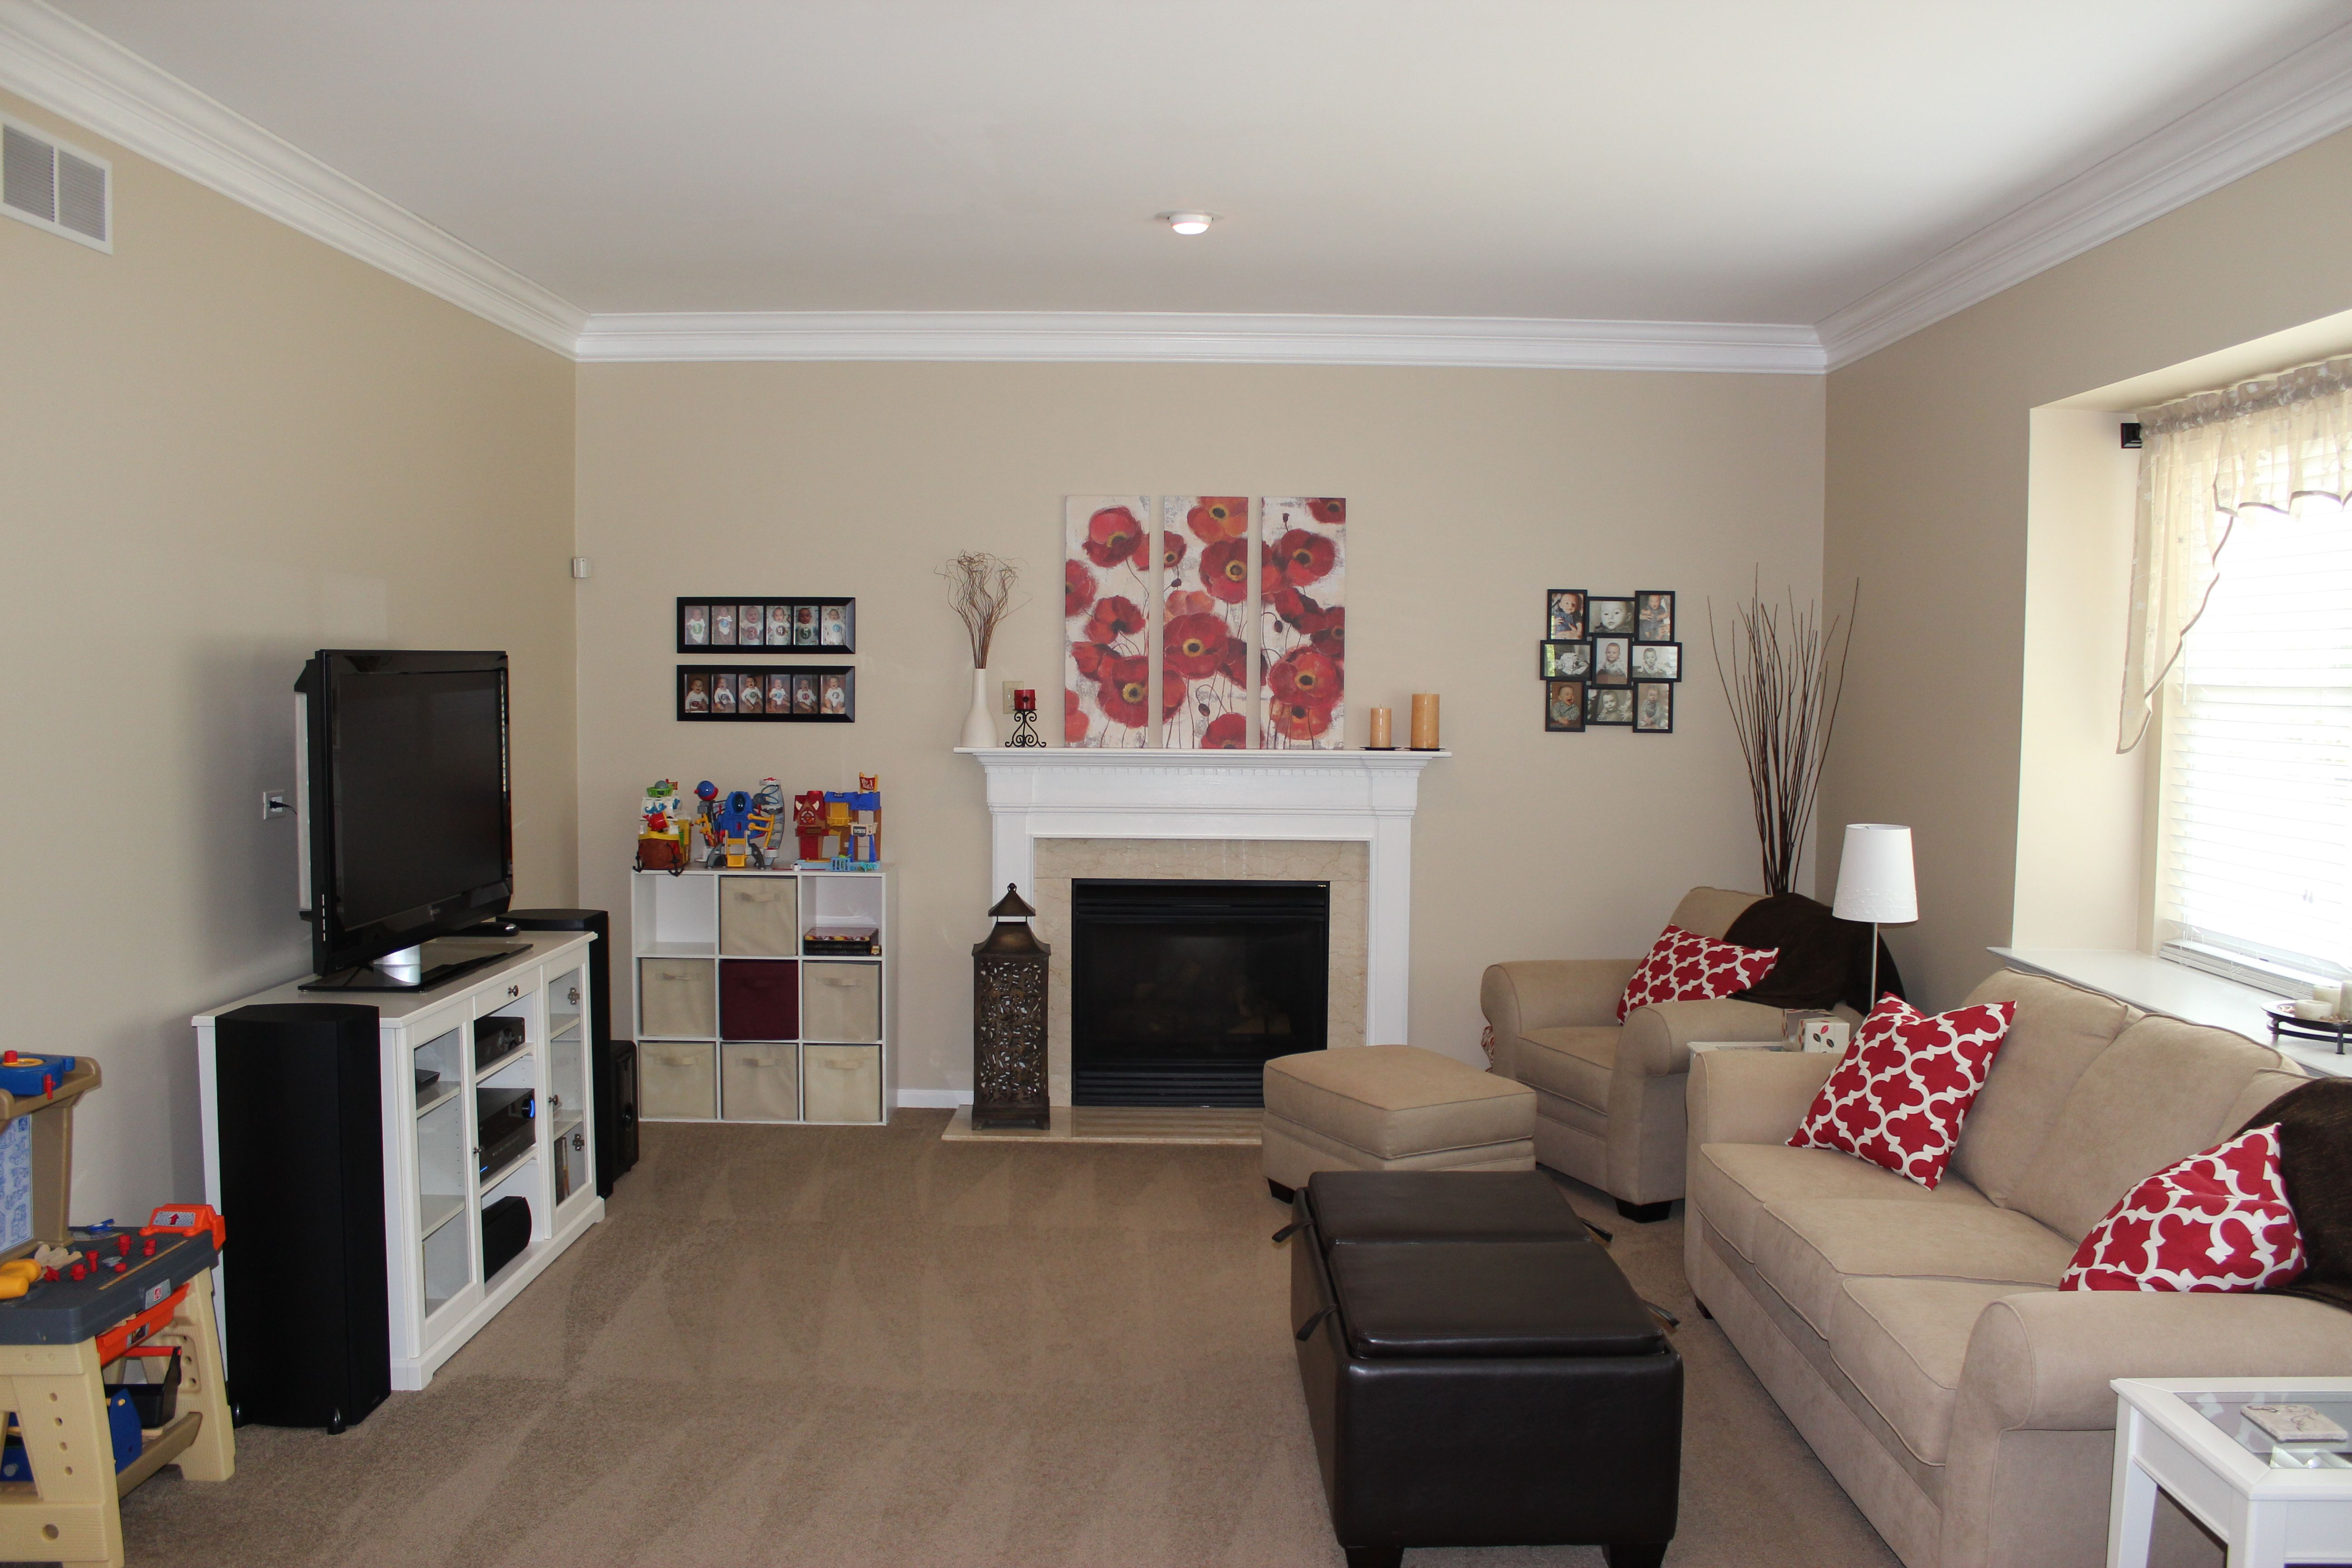 My Own Family Room Sherwin Williams Softer Tan I Love It With The Red Accents Living Room Colors Paint Colors For Living Room Tan Living Room